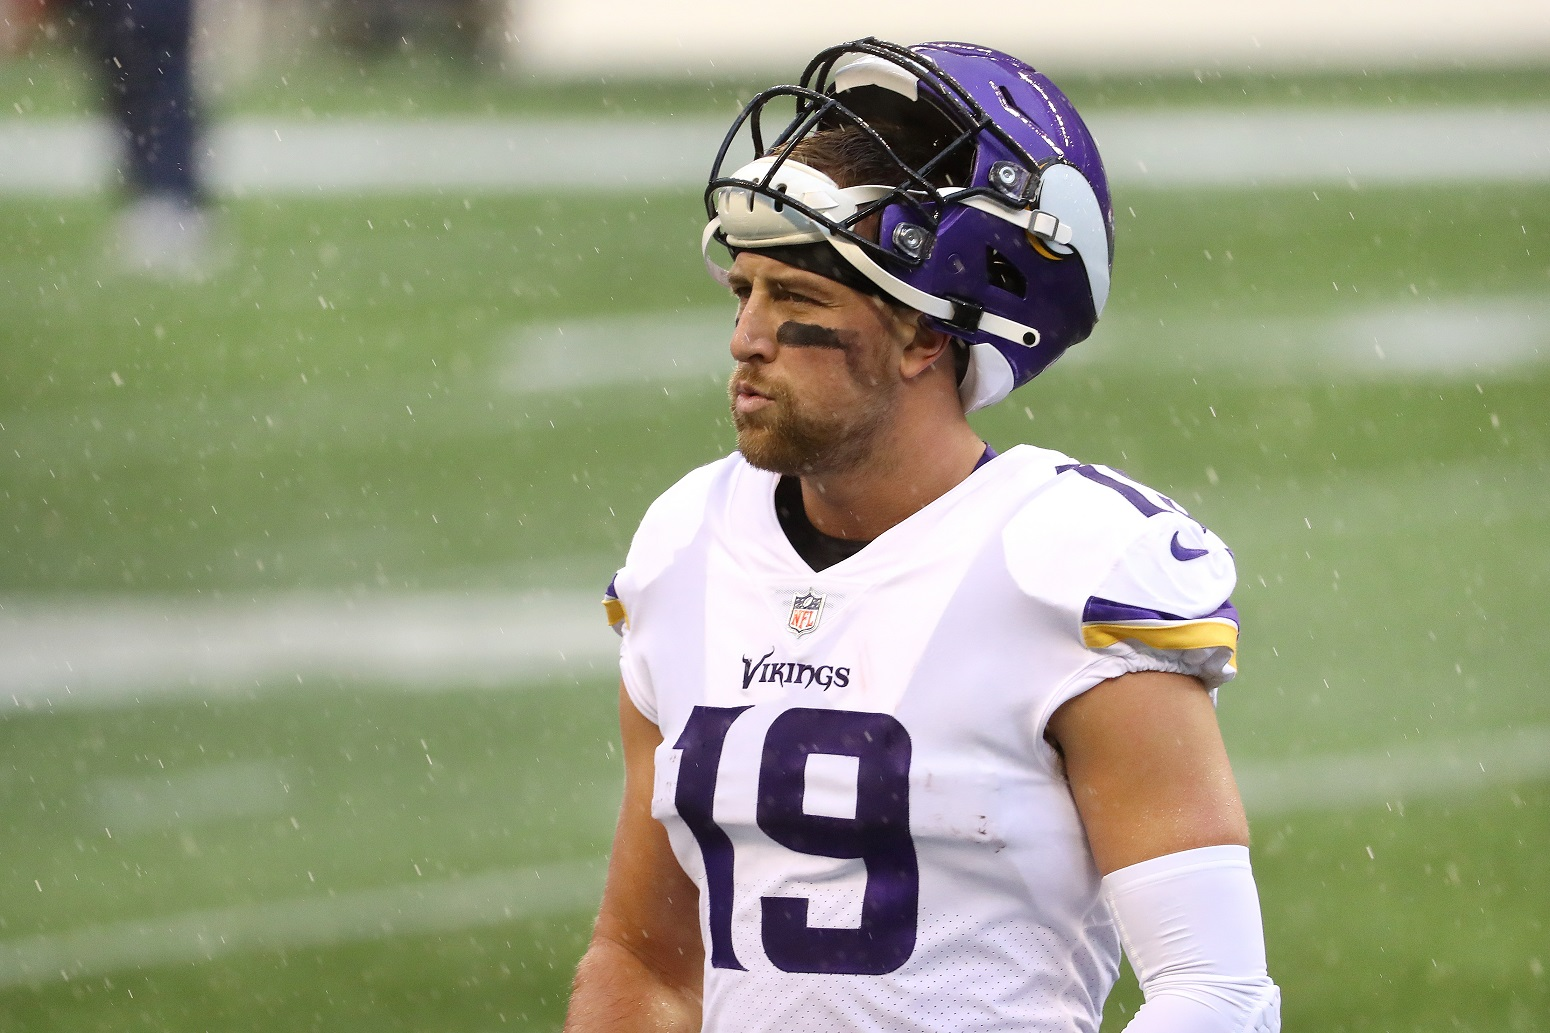 The Minnesota Vikings Have Lost Their All-Pro Offensive Star to COVID-19